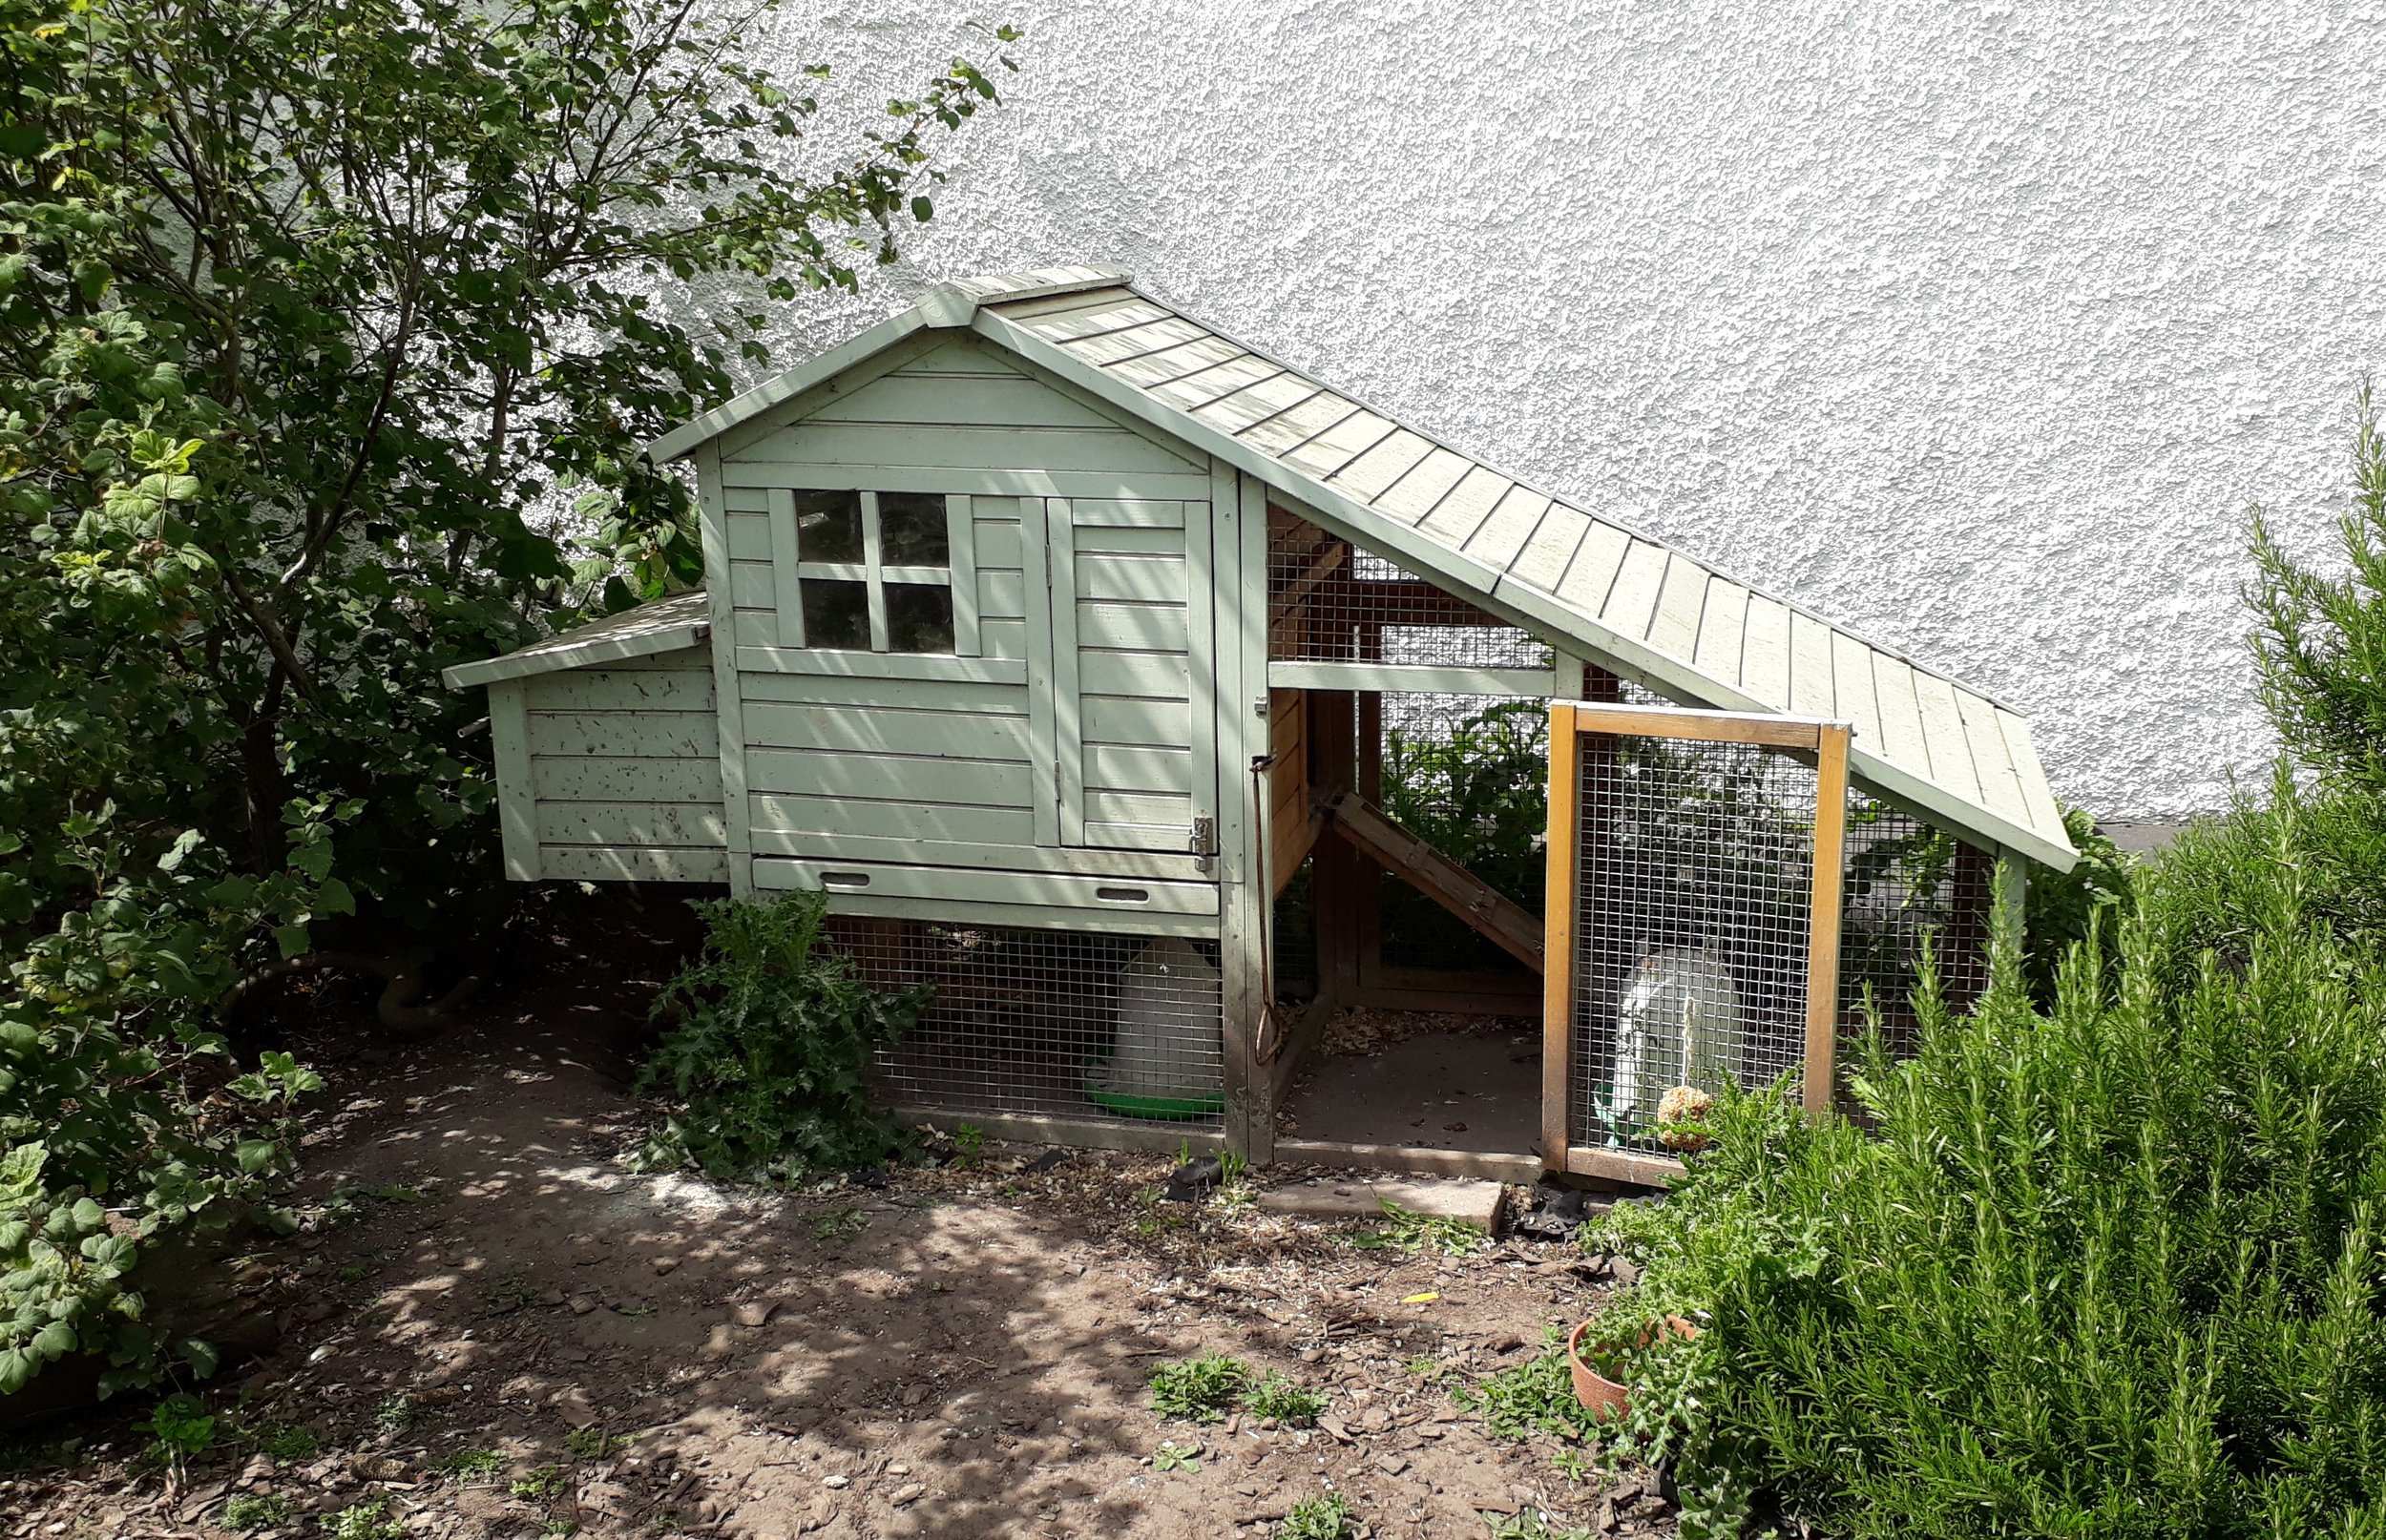 The luxury hen house. Do they know how lucky they are?